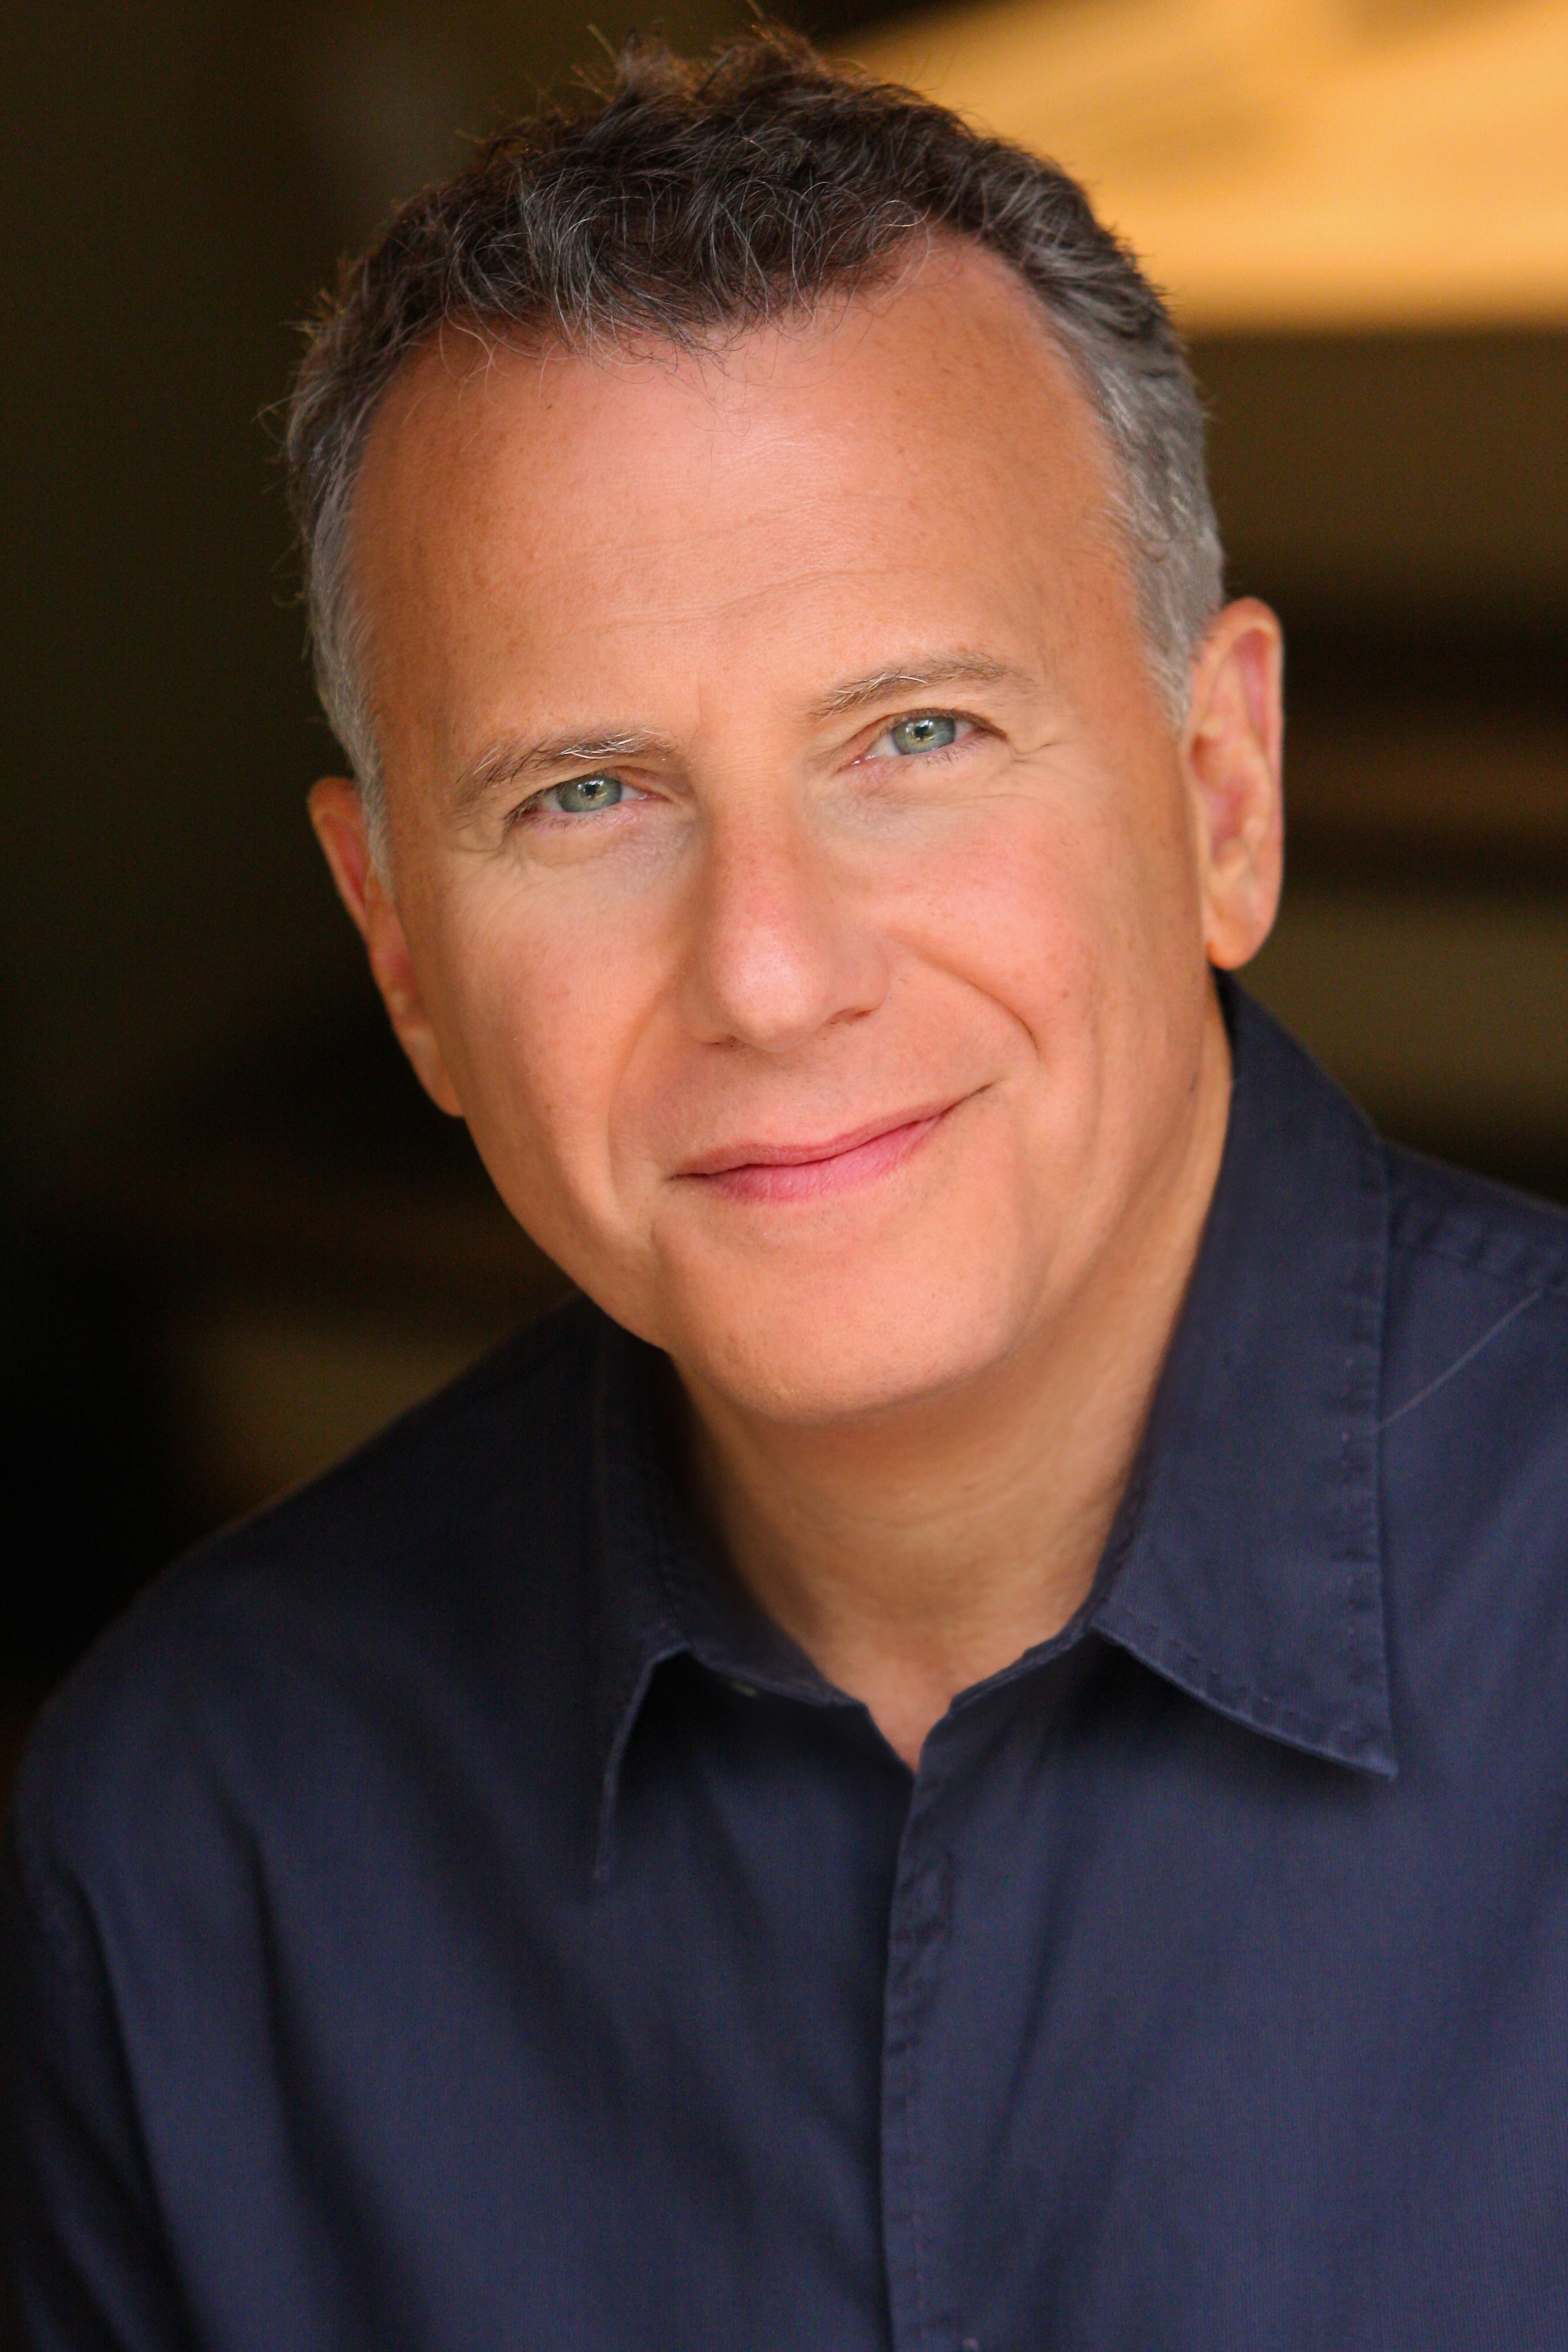 The 61-year old son of father Sam Reiser and mother Helen Reiser, 178 cm tall Paul Reiser in 2018 photo